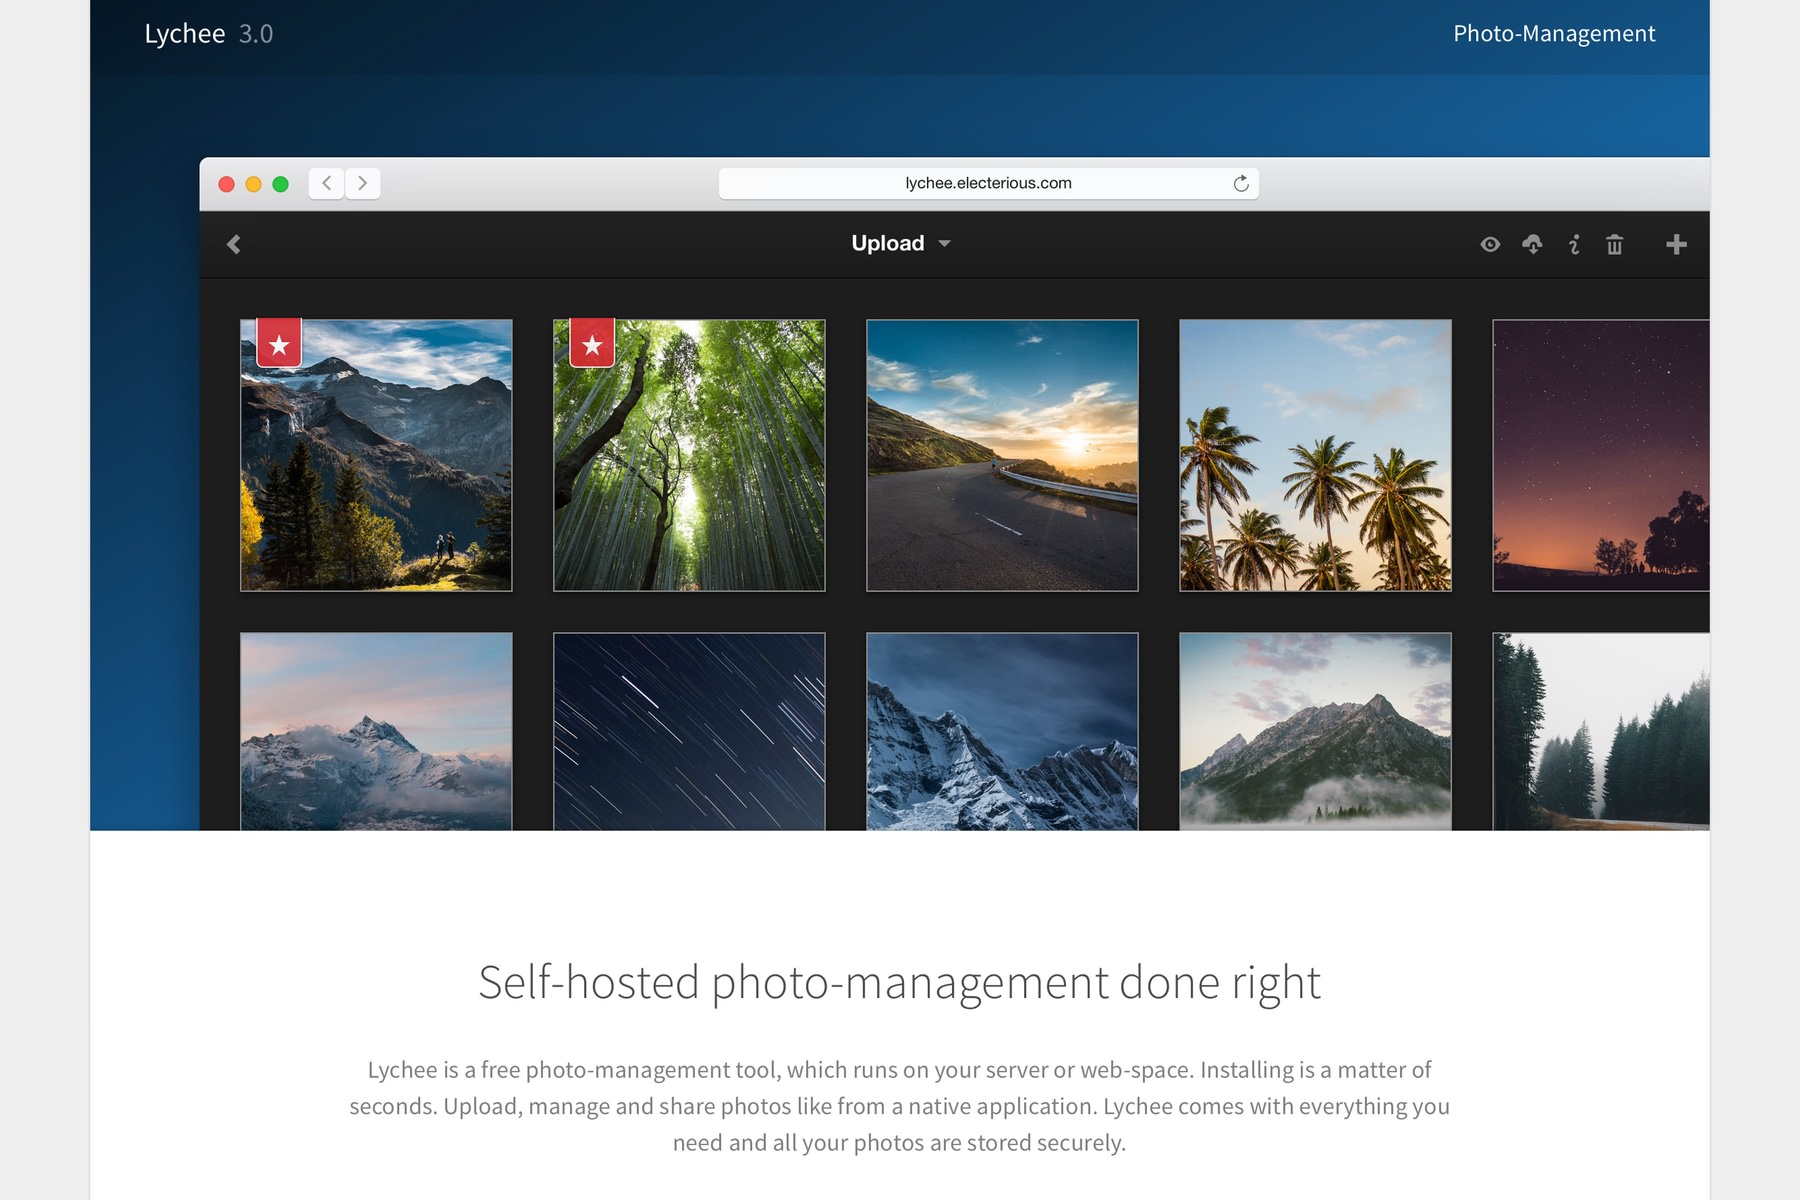 Lychee — Self-hosted photo-management done right